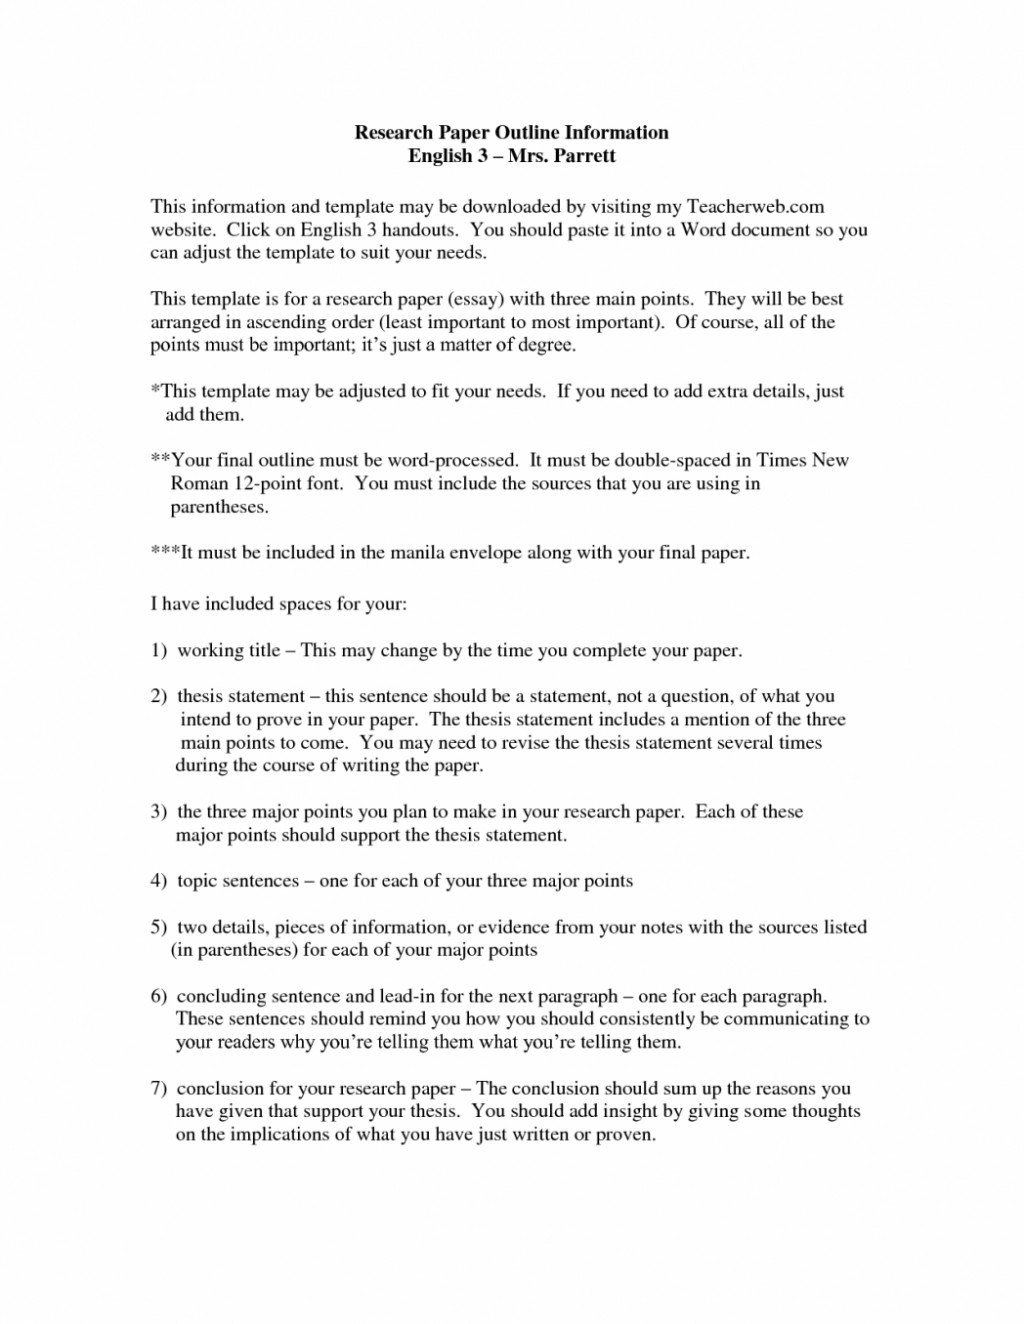 007 Essay Example Nhs Format Sample Outline Aetr Maker Online Examples Of Thesis Statements For Research Papers Template Cgi 1048x1356 Conclusion Staggering Essays Large